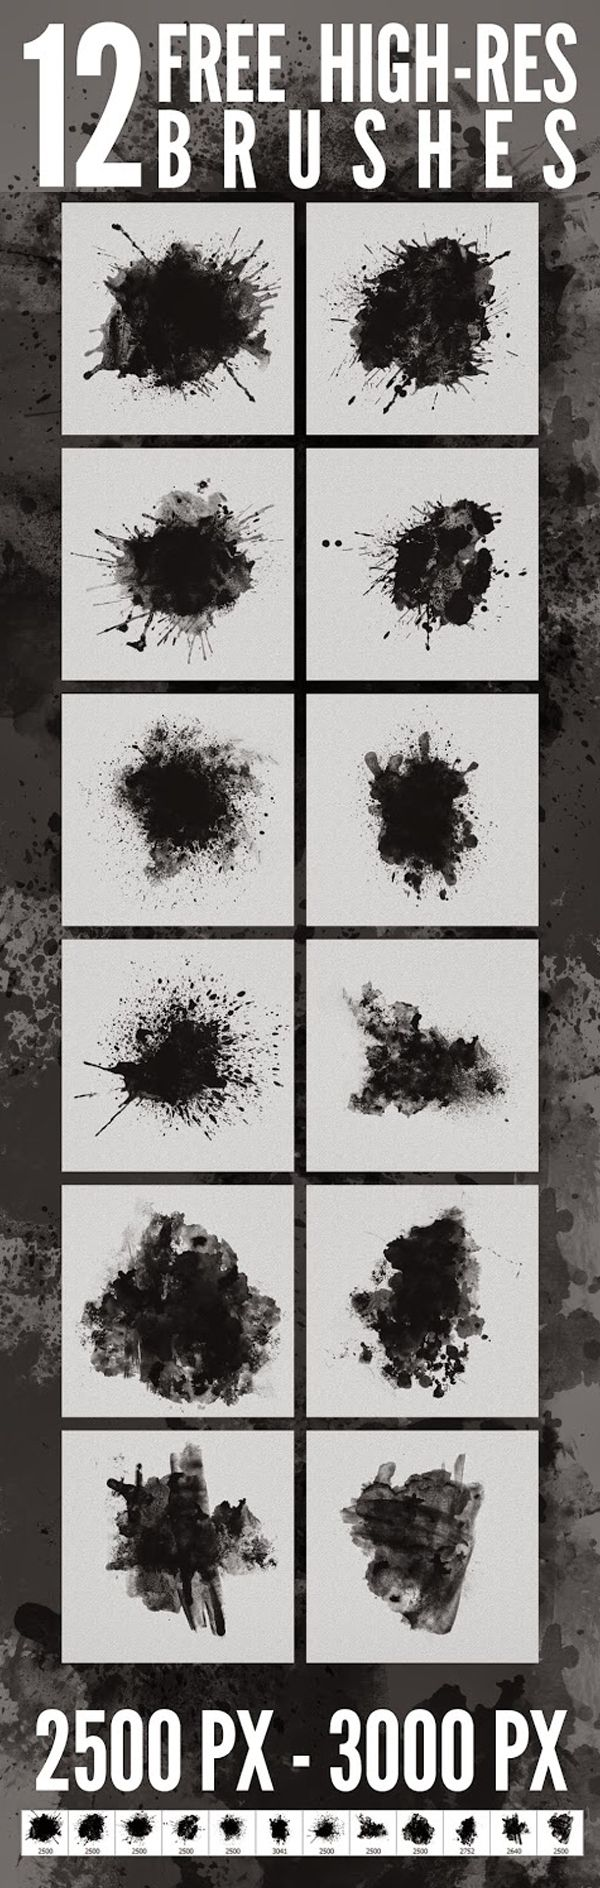 Free Dirty Artwork Brushes - Photoshop Add-ons (12 Brushes)